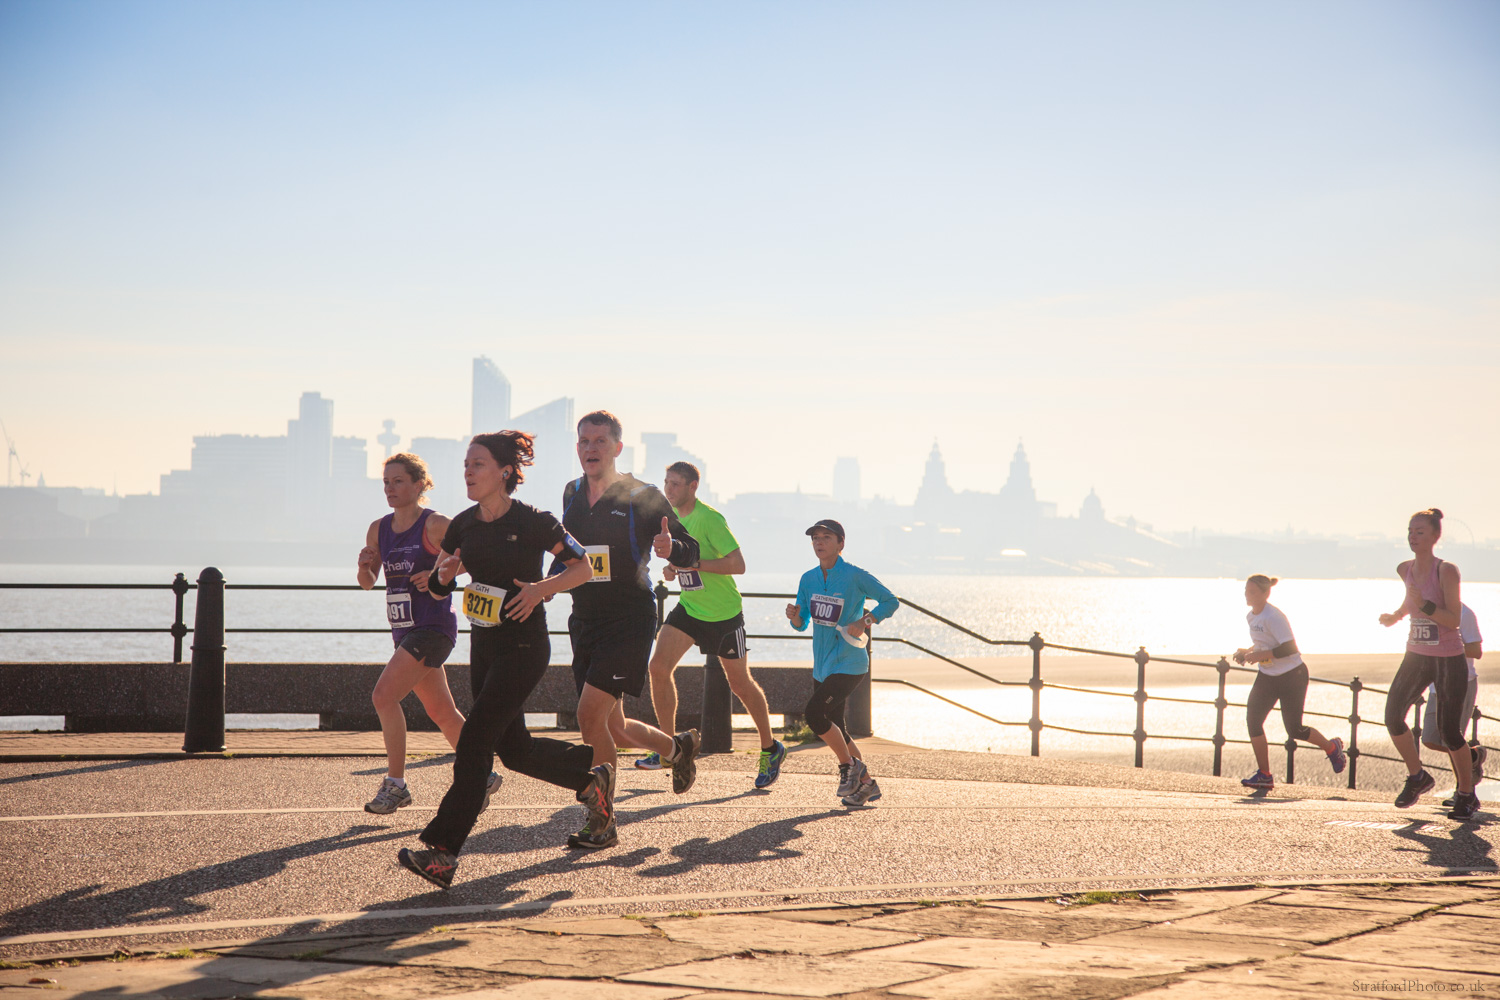 Runners in the 2014 BTR Wirral Half Marathon run along New Brighton promenade before Liverpool majestic skyline as the bright morning sun hits the river Mersey.jpg